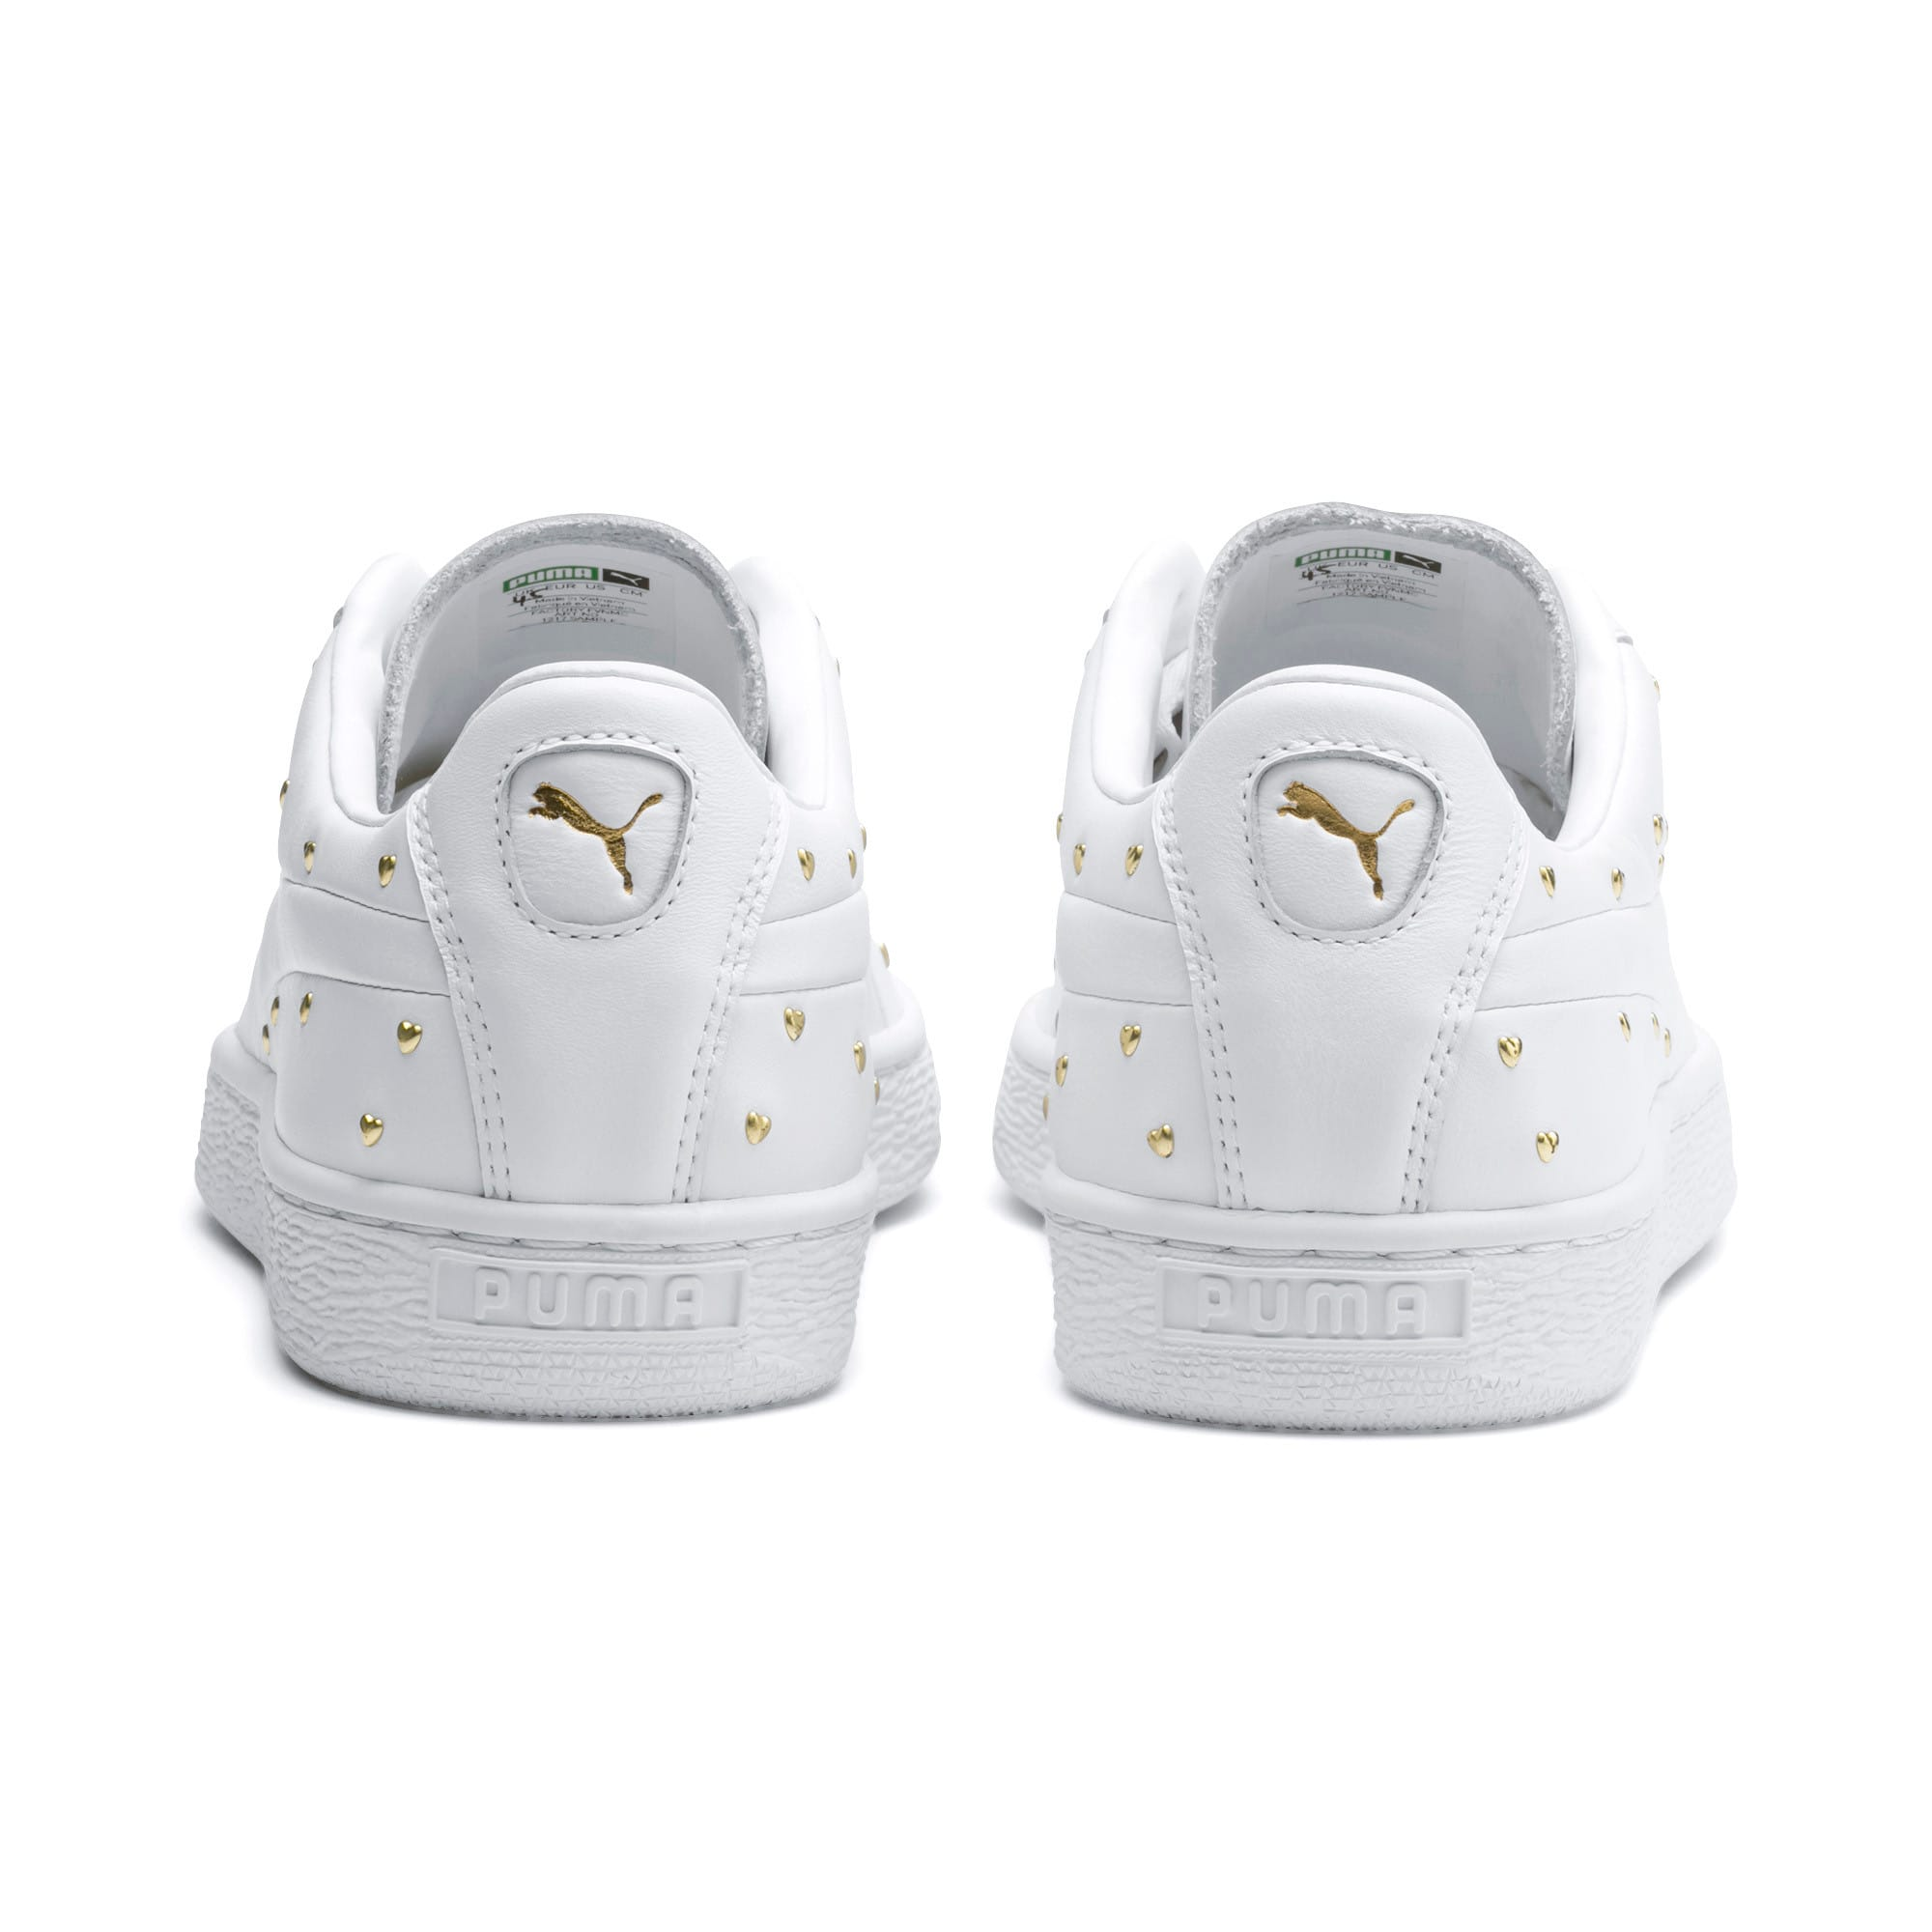 Thumbnail 4 of Basket Studs Women's Trainers, Puma White-Puma Team Gold, medium-IND